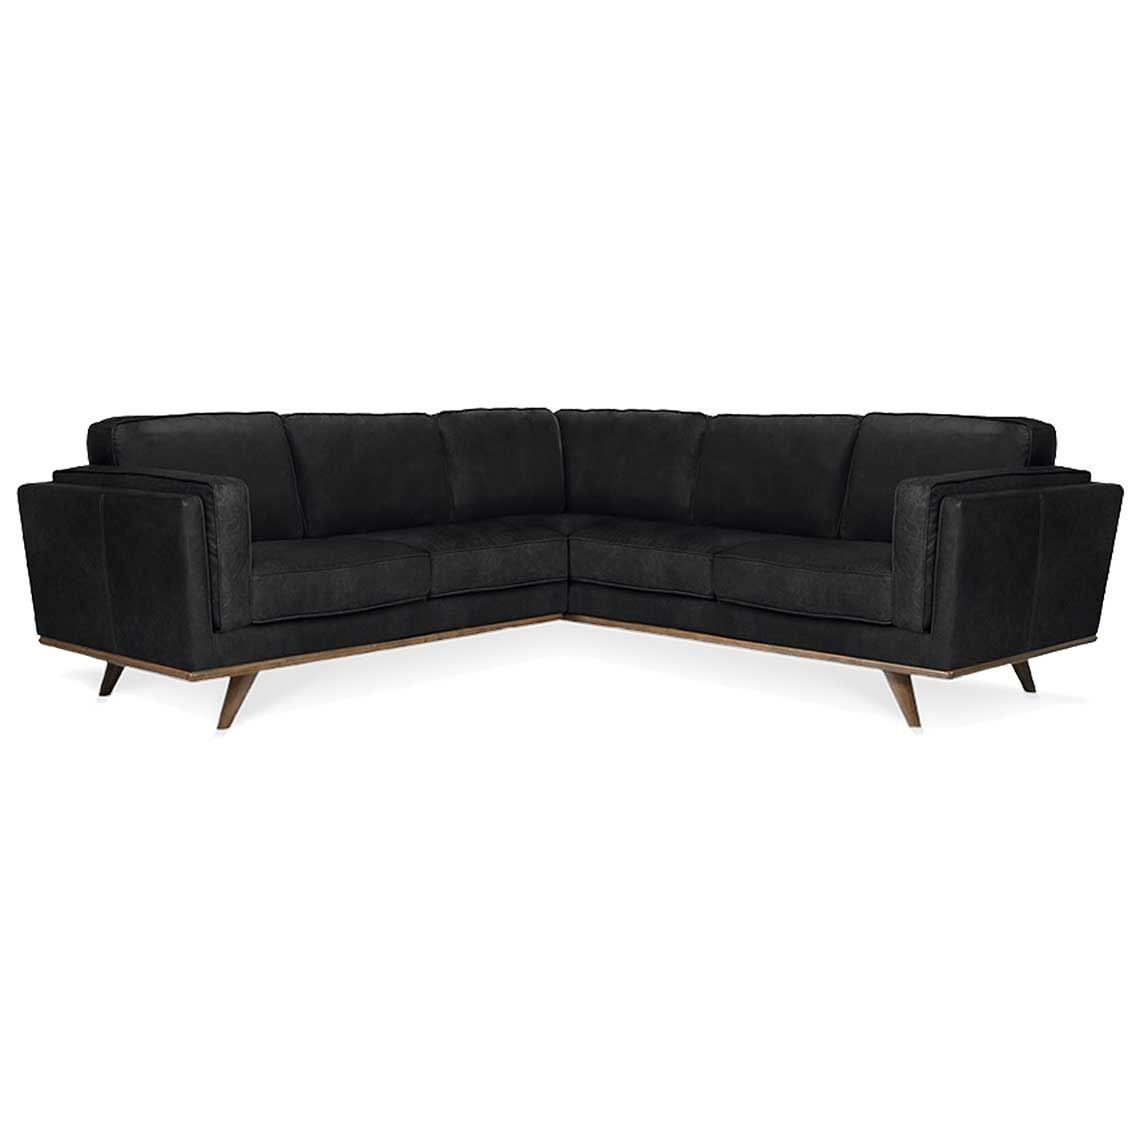 Coco Leather Corner Lounge With Chaise Lounges Living Room Furniture Outdoor Bbqs Har Couches Living Room Chaise Lounge Living Room Living Room Sofa